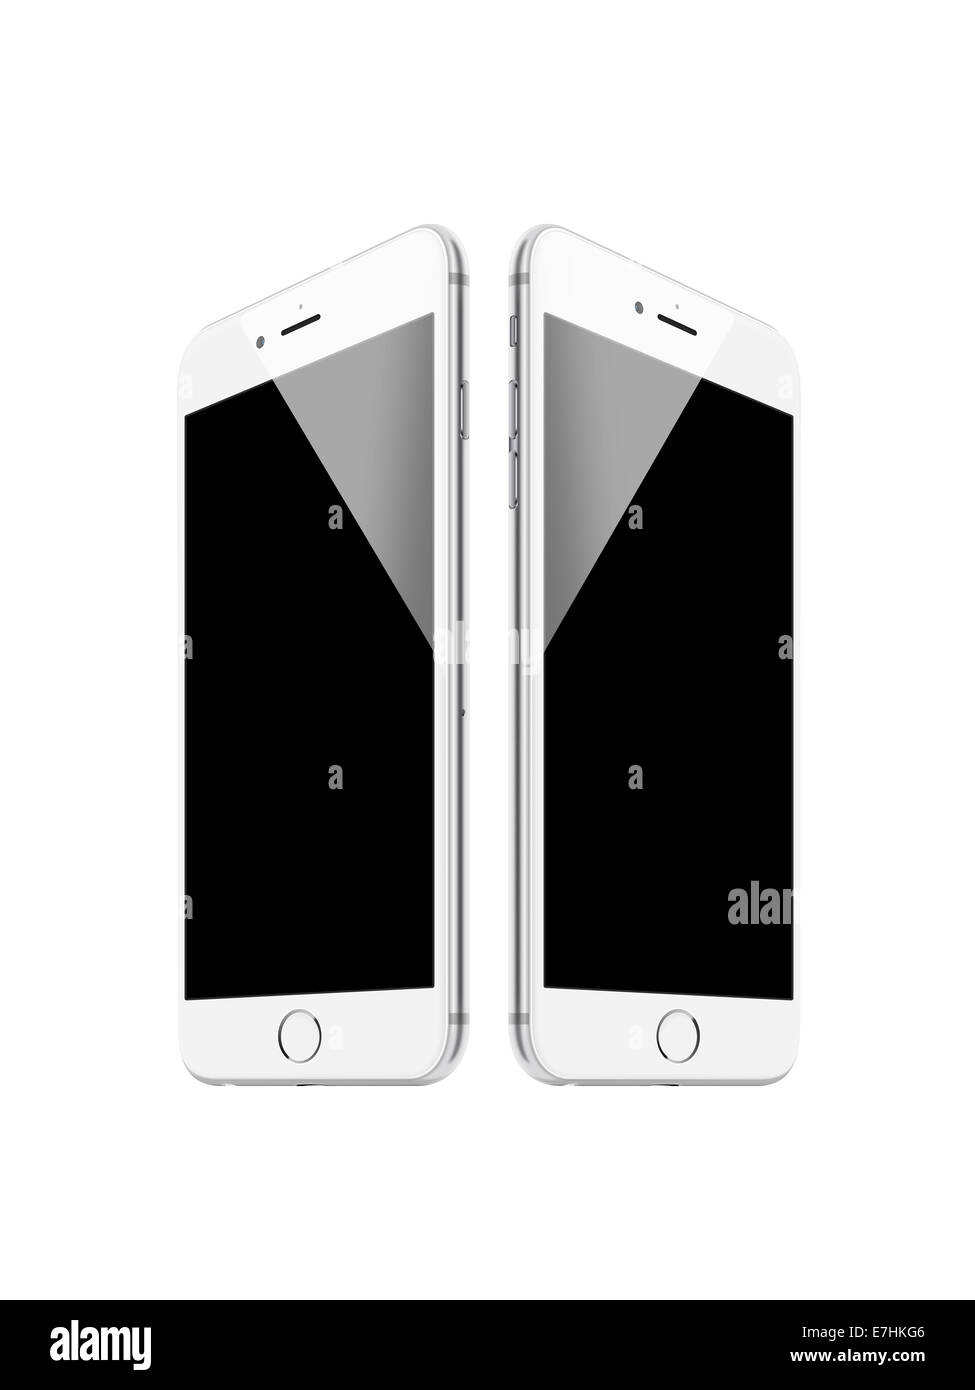 Digitally generated image of cell phones, iphone 6 (silver). - Stock Image